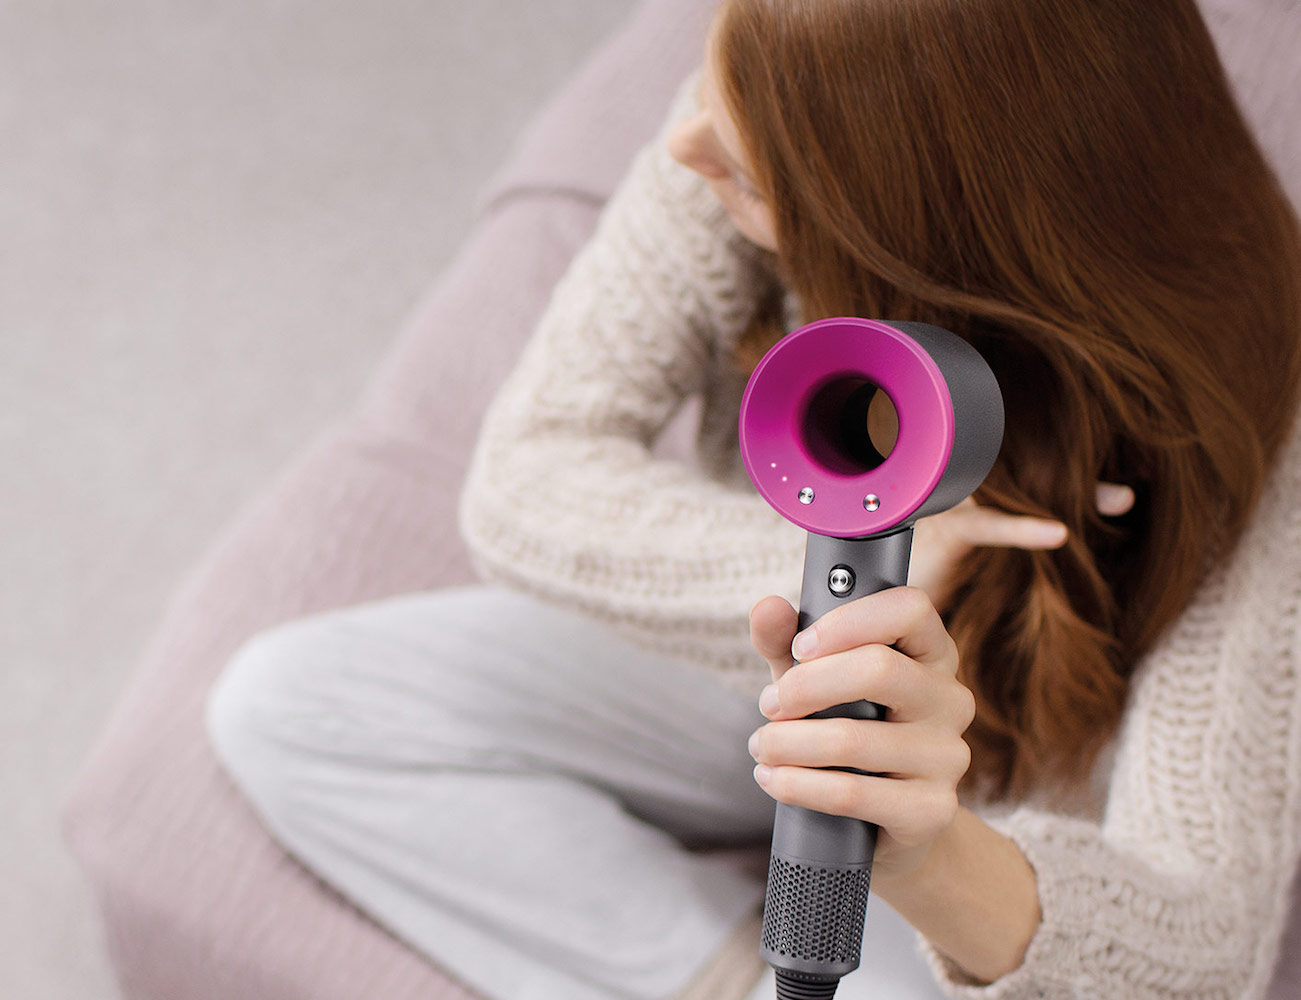 The New Dyson Supersonic Hair Dryer